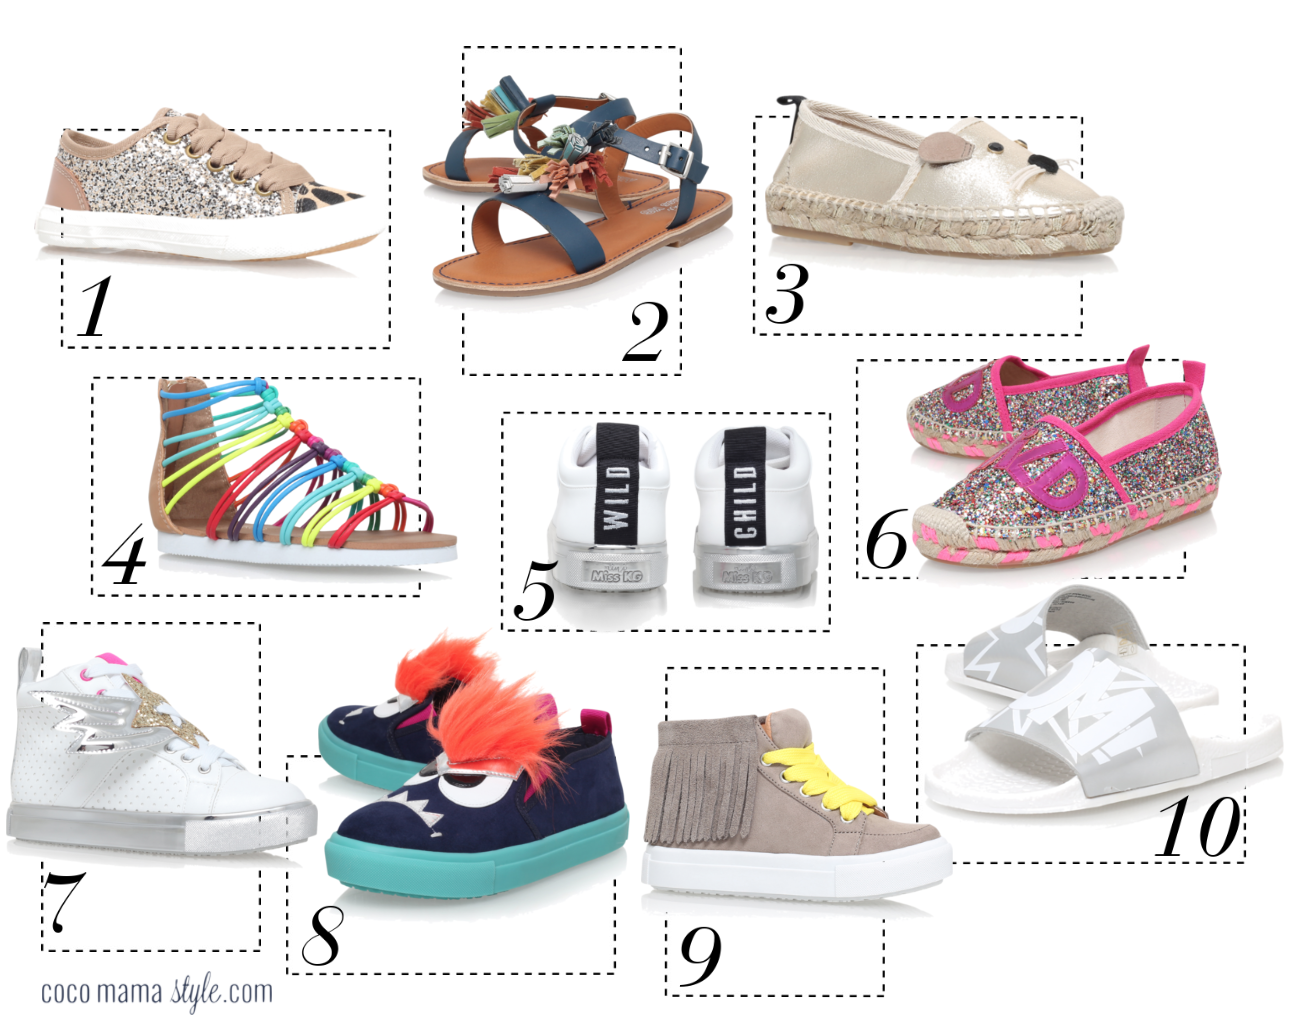 Mini must have   cocomamastyle   Mini Miss KG kids shoes